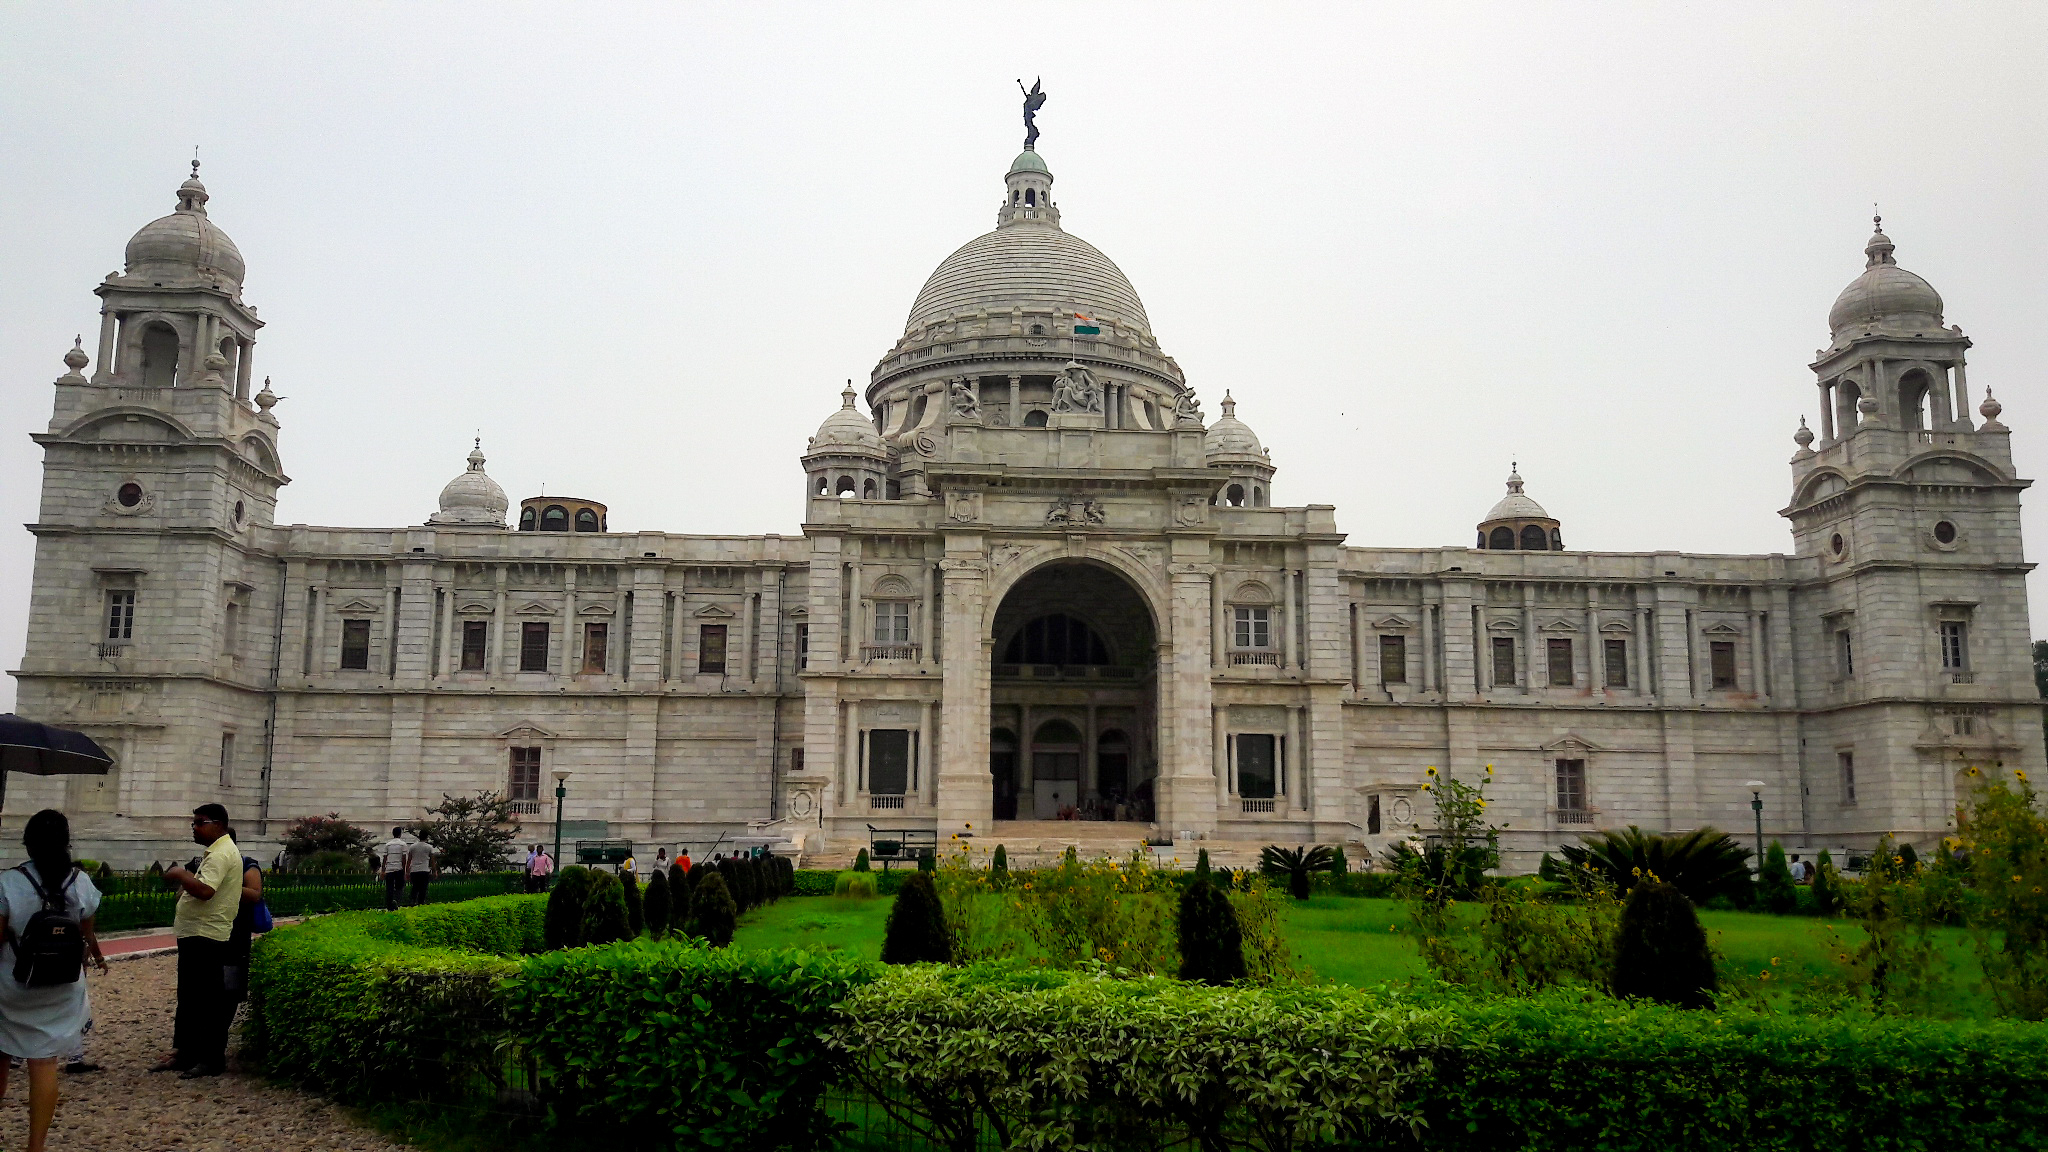 Victoria Memorial in Kolkata, West Bengal